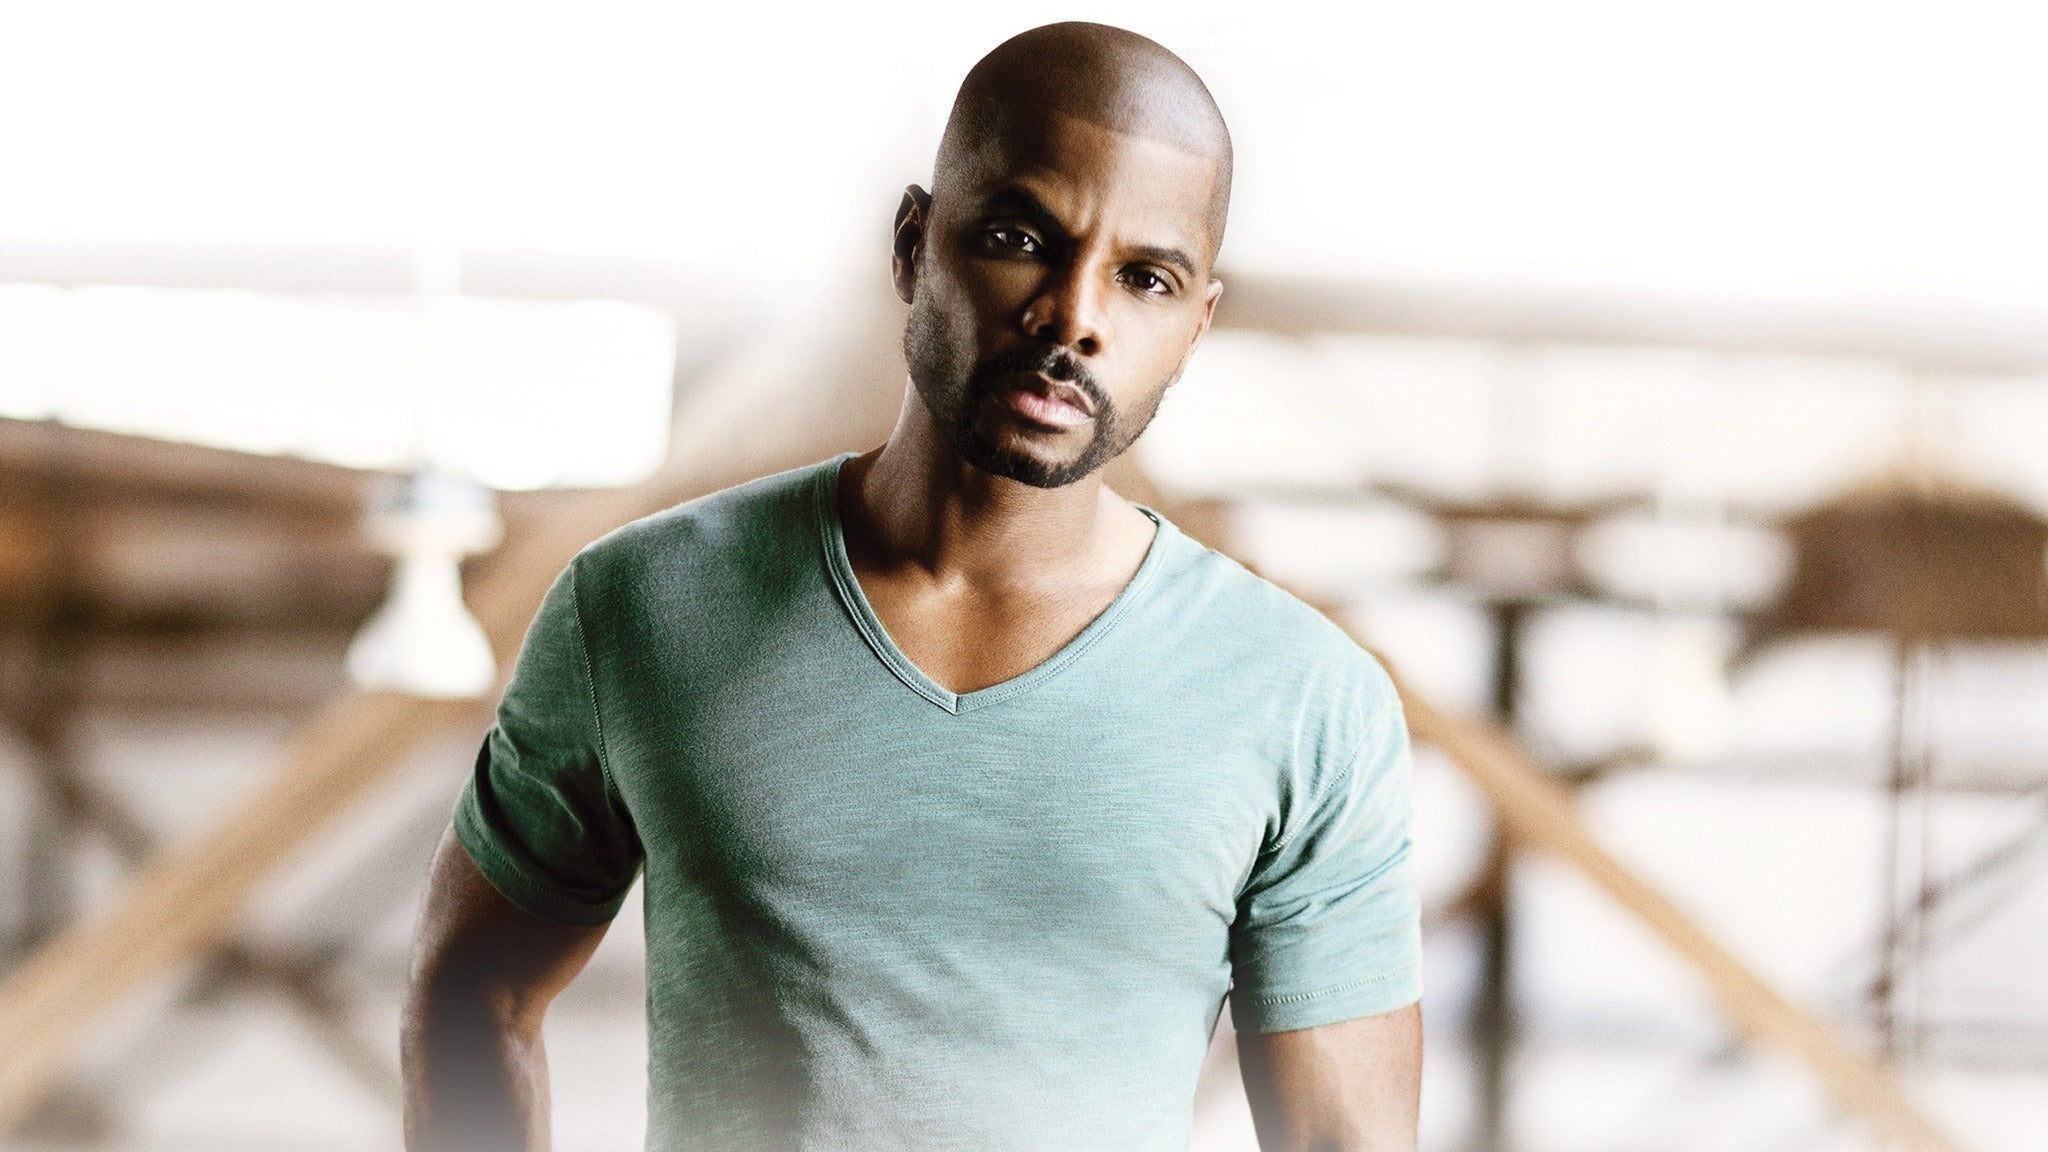 SORRY, THIS EVENT IS NO LONGER ACTIVE<br>Kirk Franklin Live at Macon City Auditorium - Macon, GA 31201